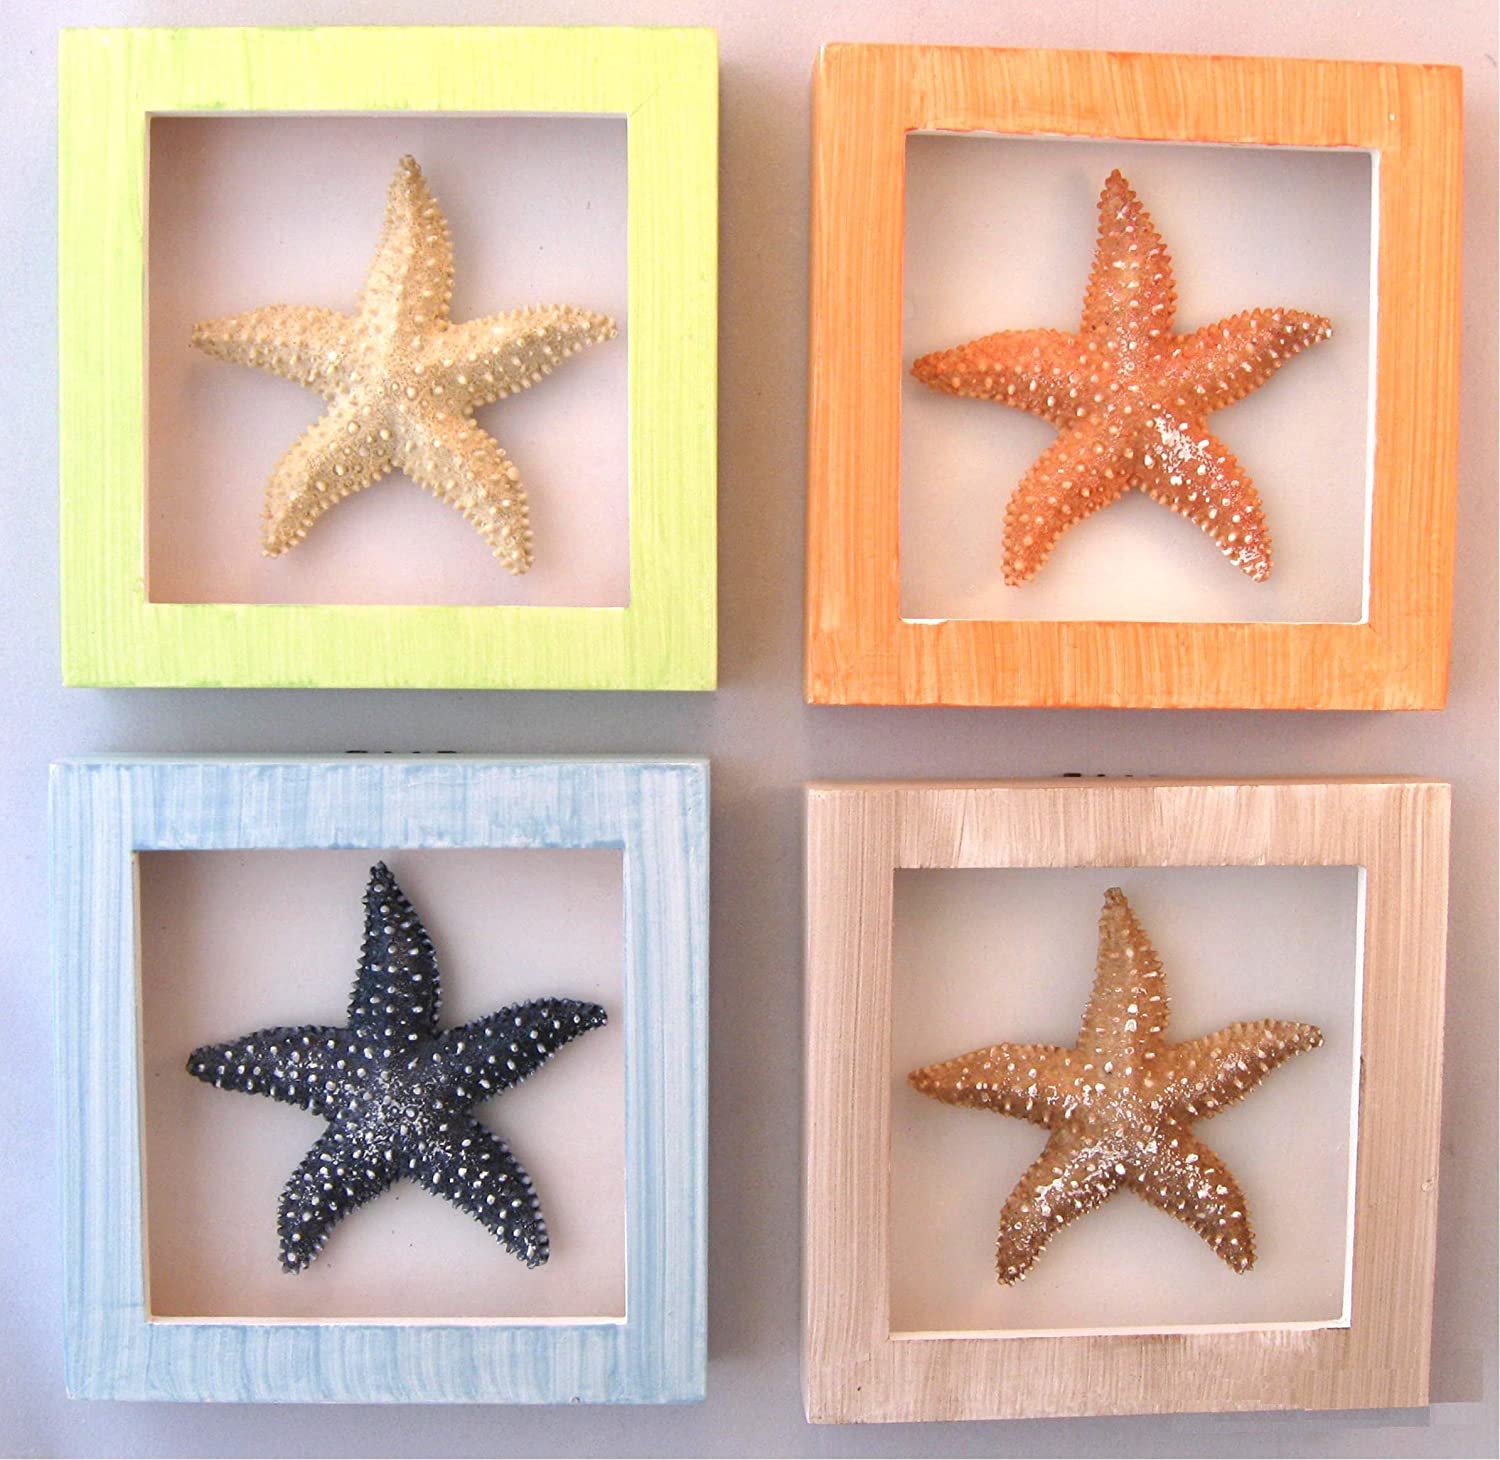 Set 4 Shadow Boxes Starfish Tropical Beach Decor CHECK PRICE